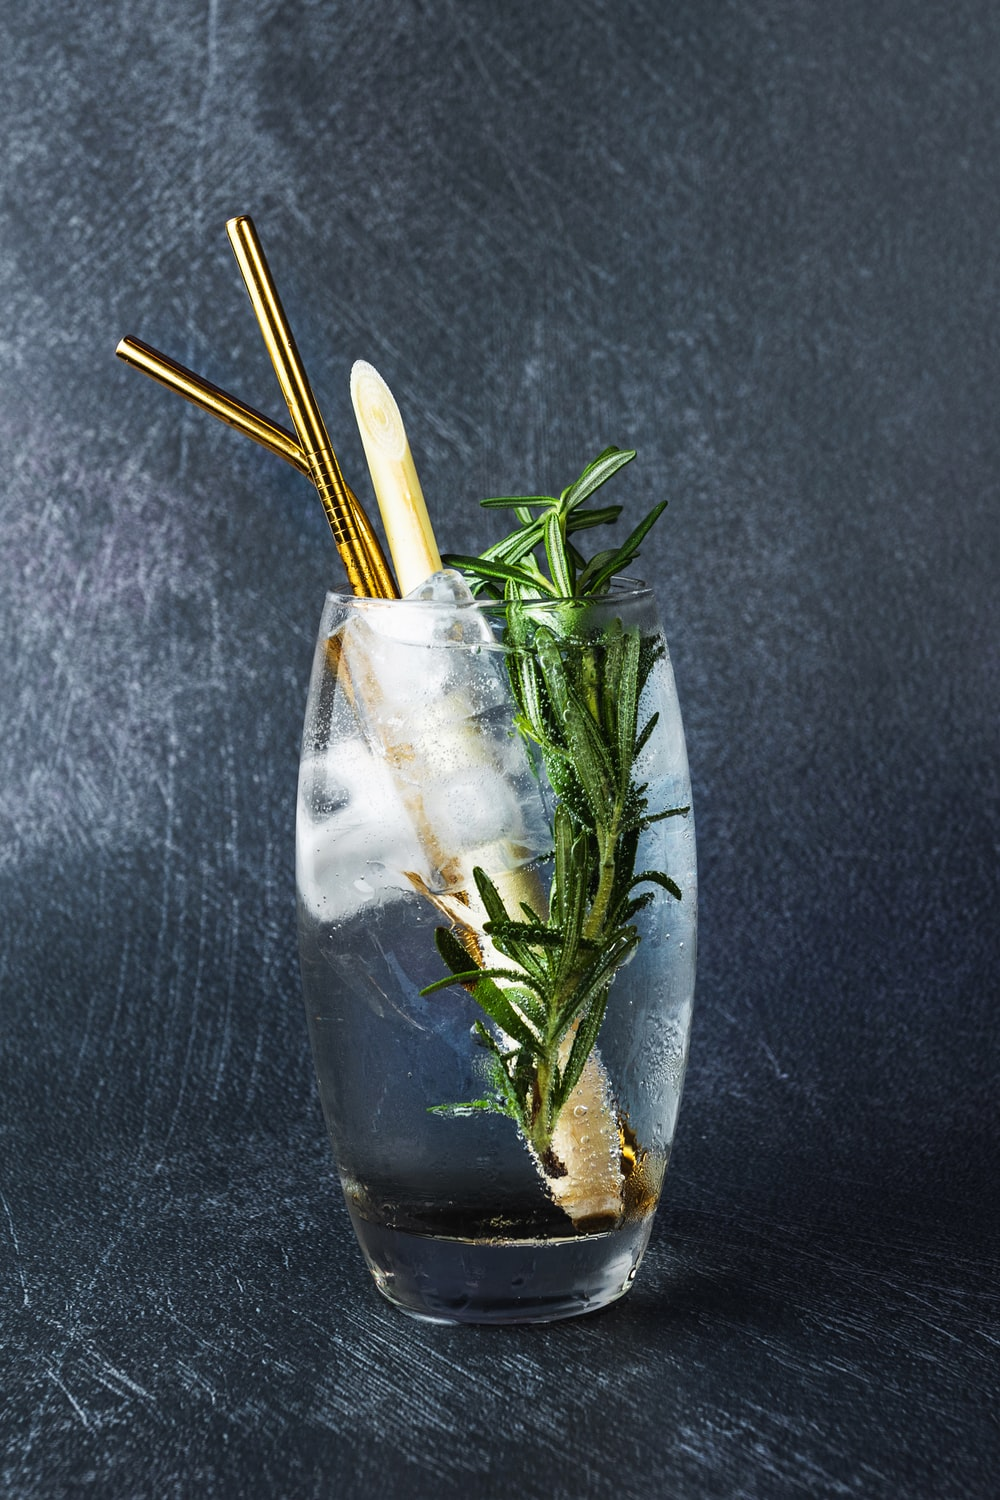 Rosemary herb inside clear glass with water and yellow straw